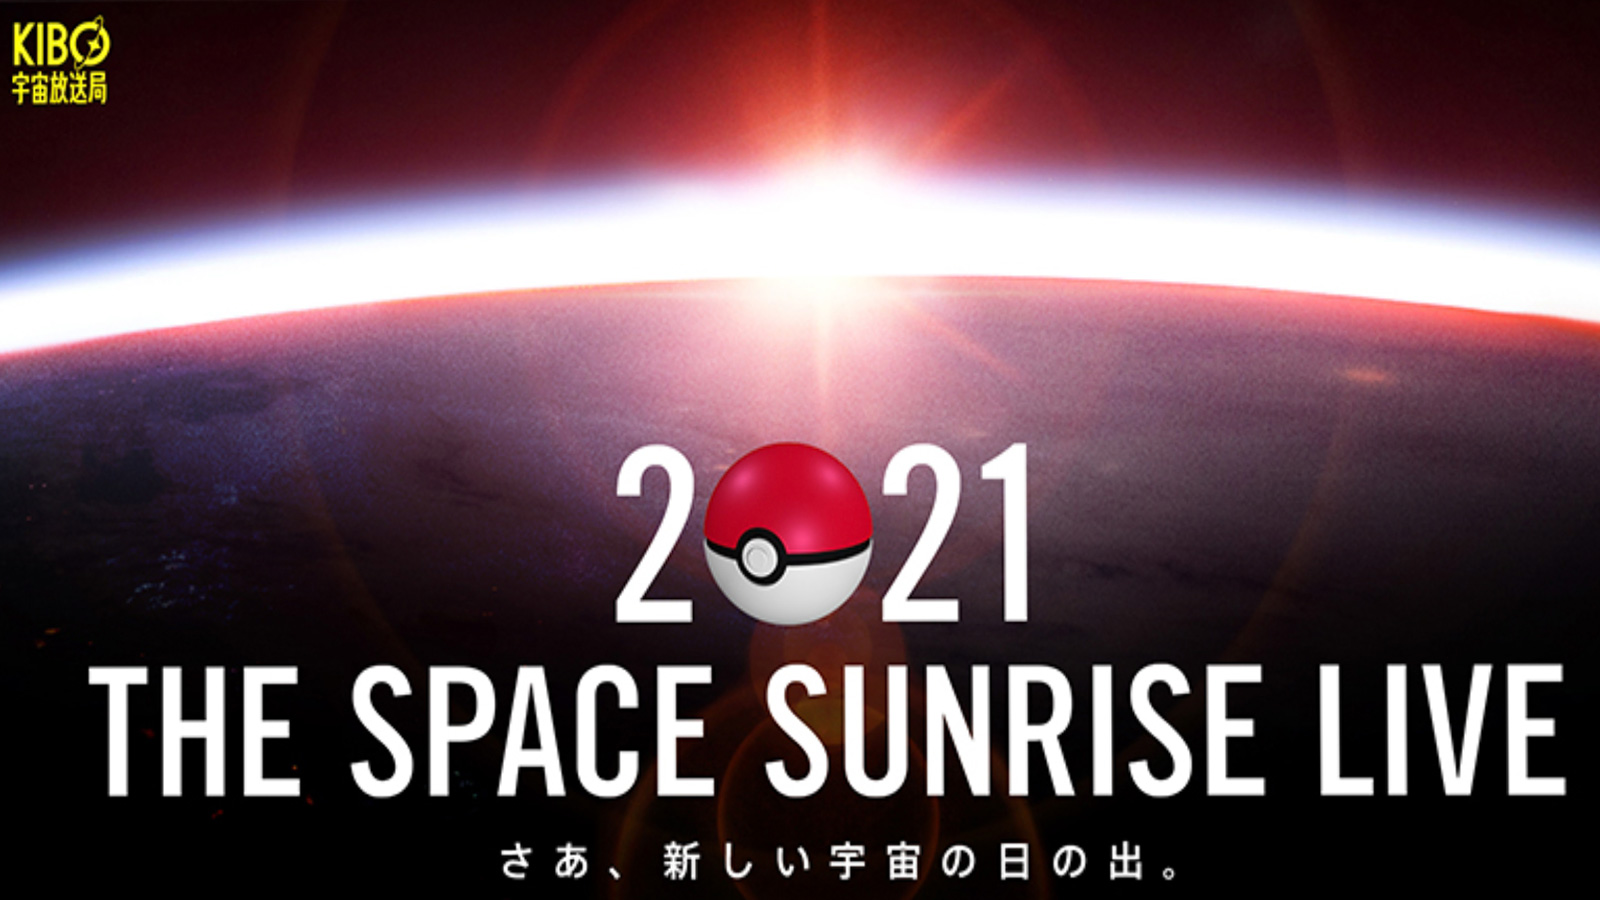 Promotion for Pokemon Space Sunrise New Years Eve live event.